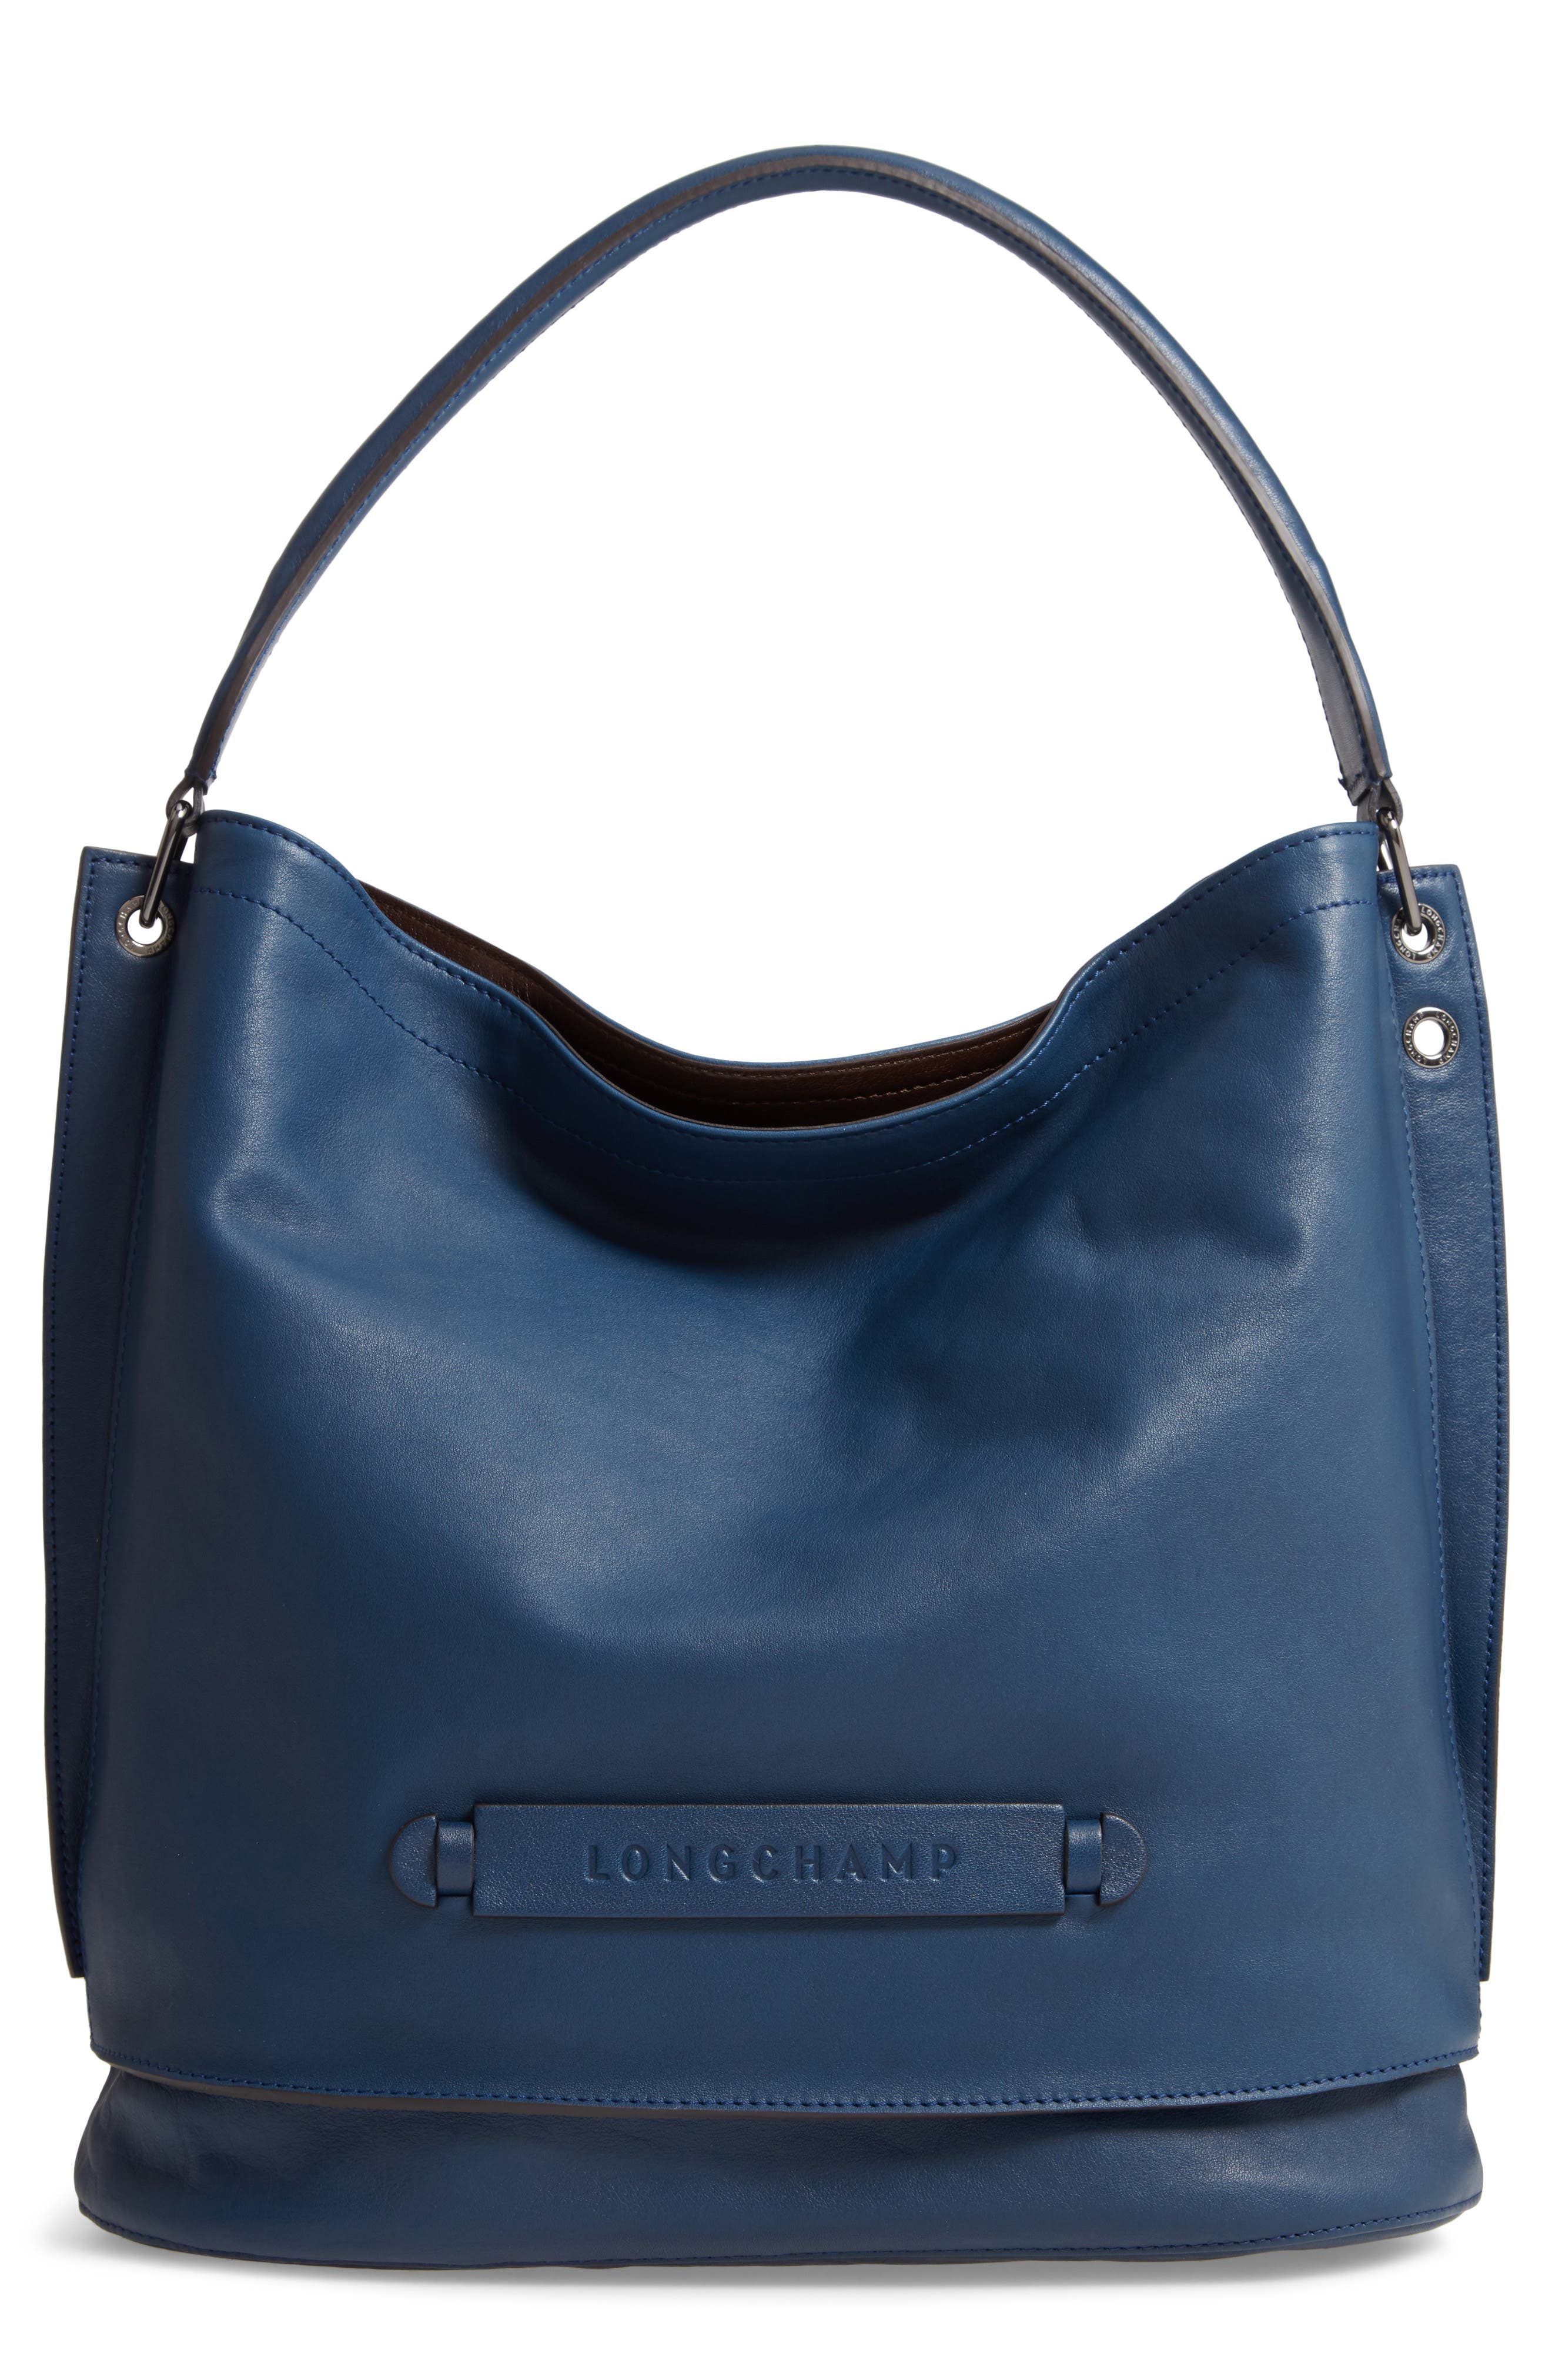 '3D' LEATHER HOBO - BLUE